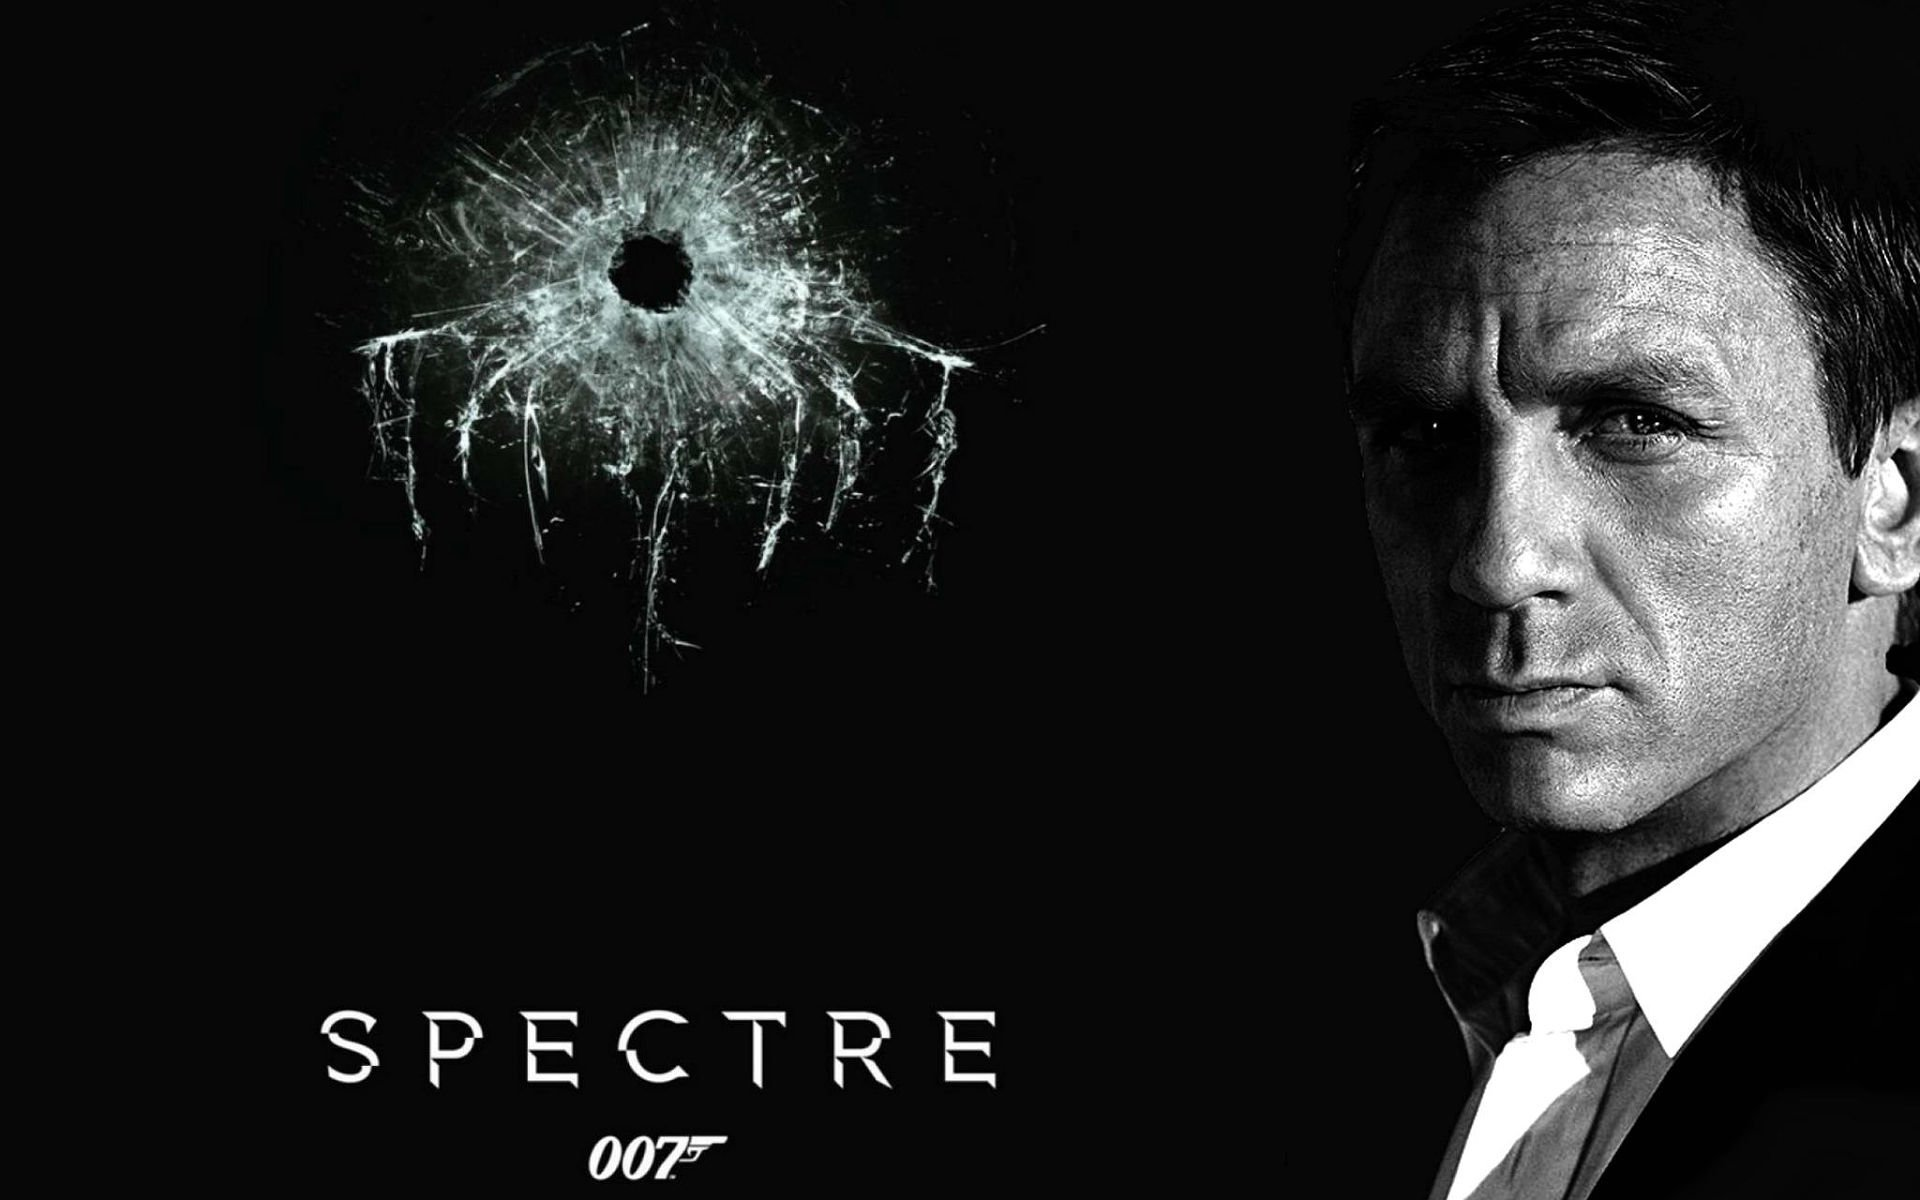 Spectre - James Bond - 007 - EON Productions - Daniel Craig - Affiche film